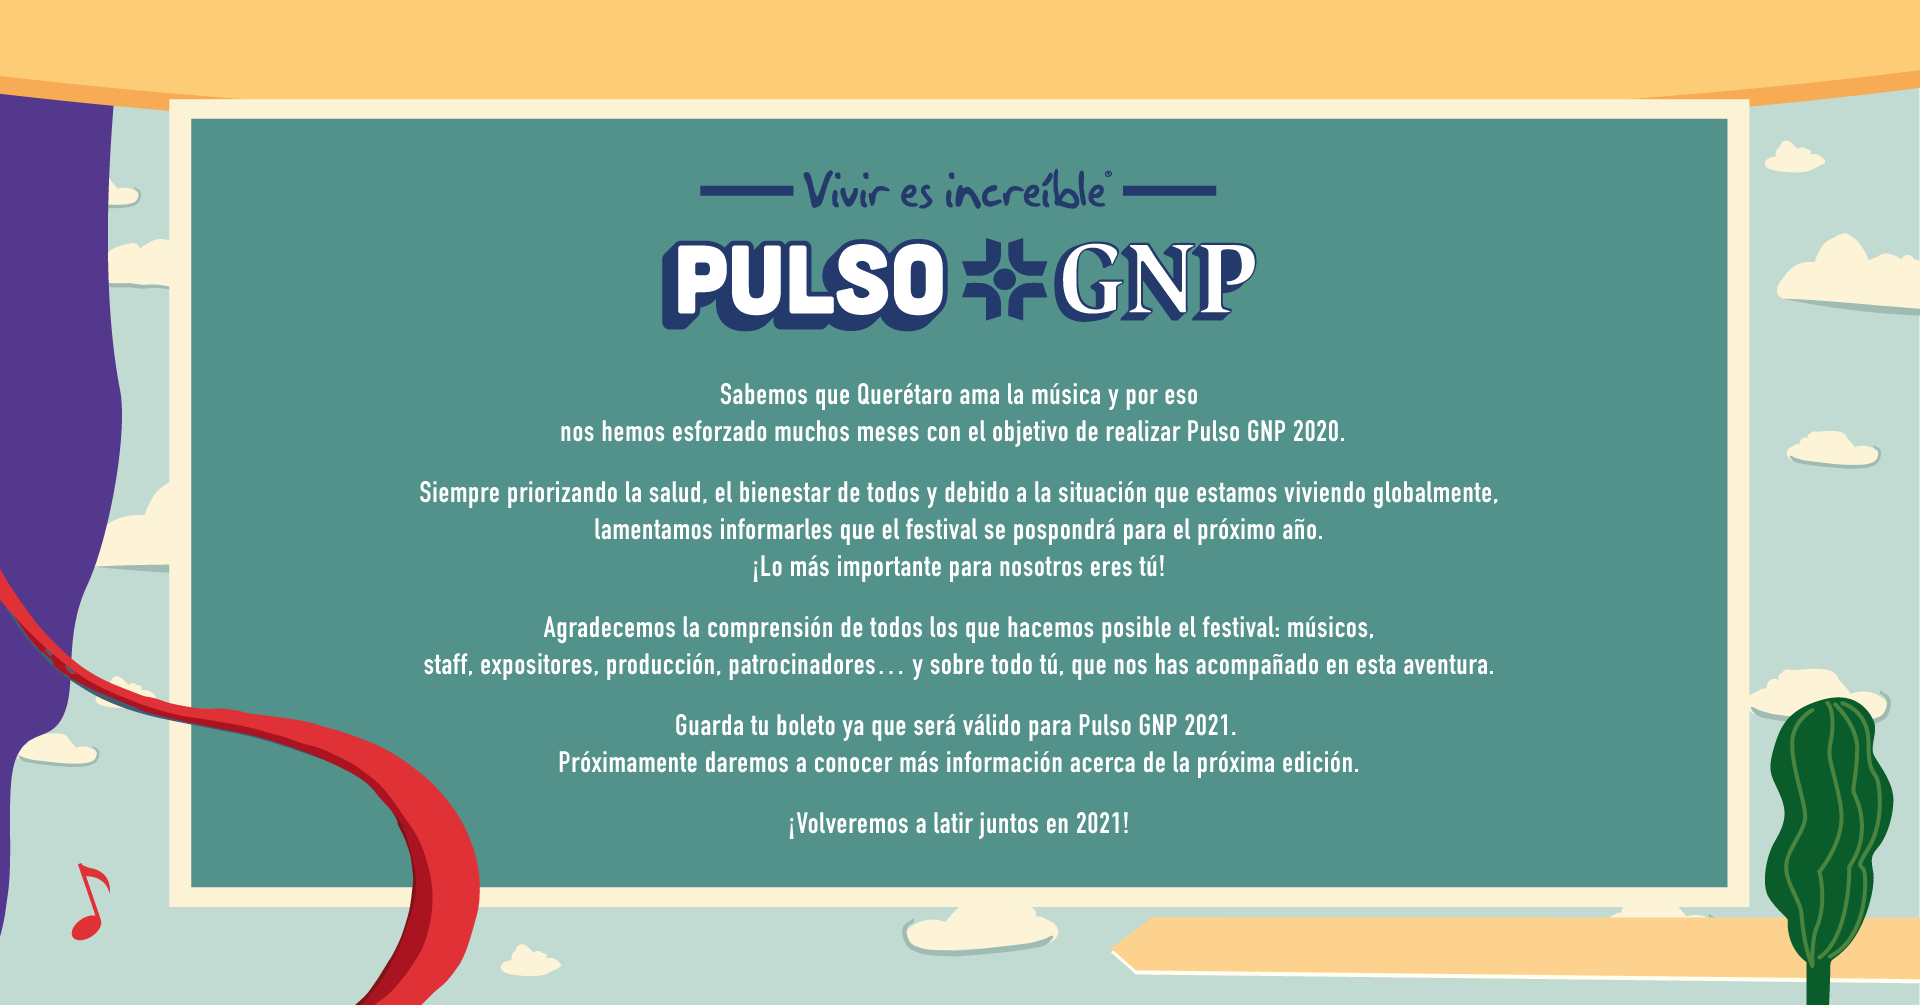 Pulso GNP